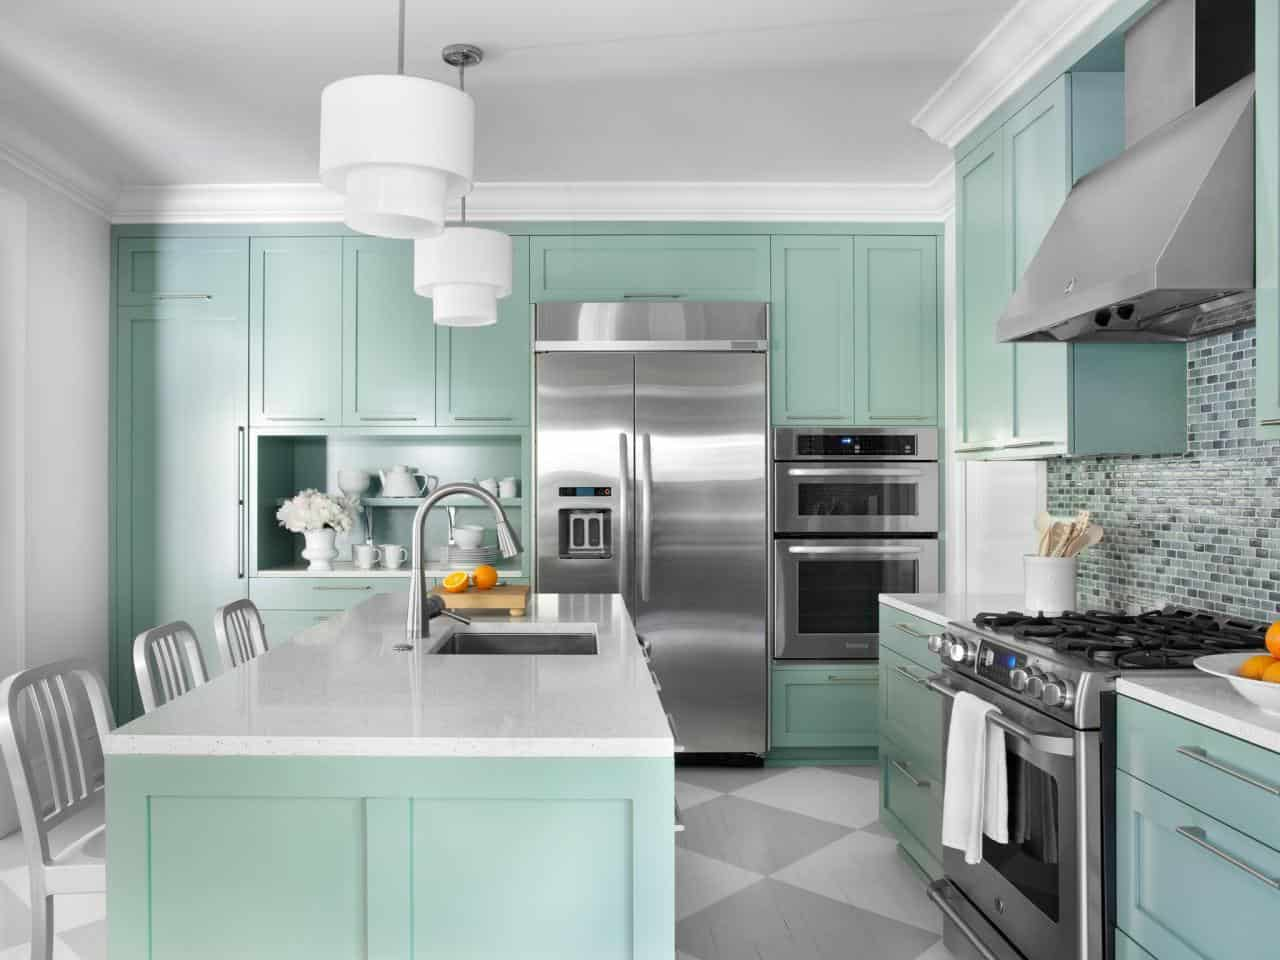 Mint green is great as a kitchen color because of how rich yet subtle and simple it is.